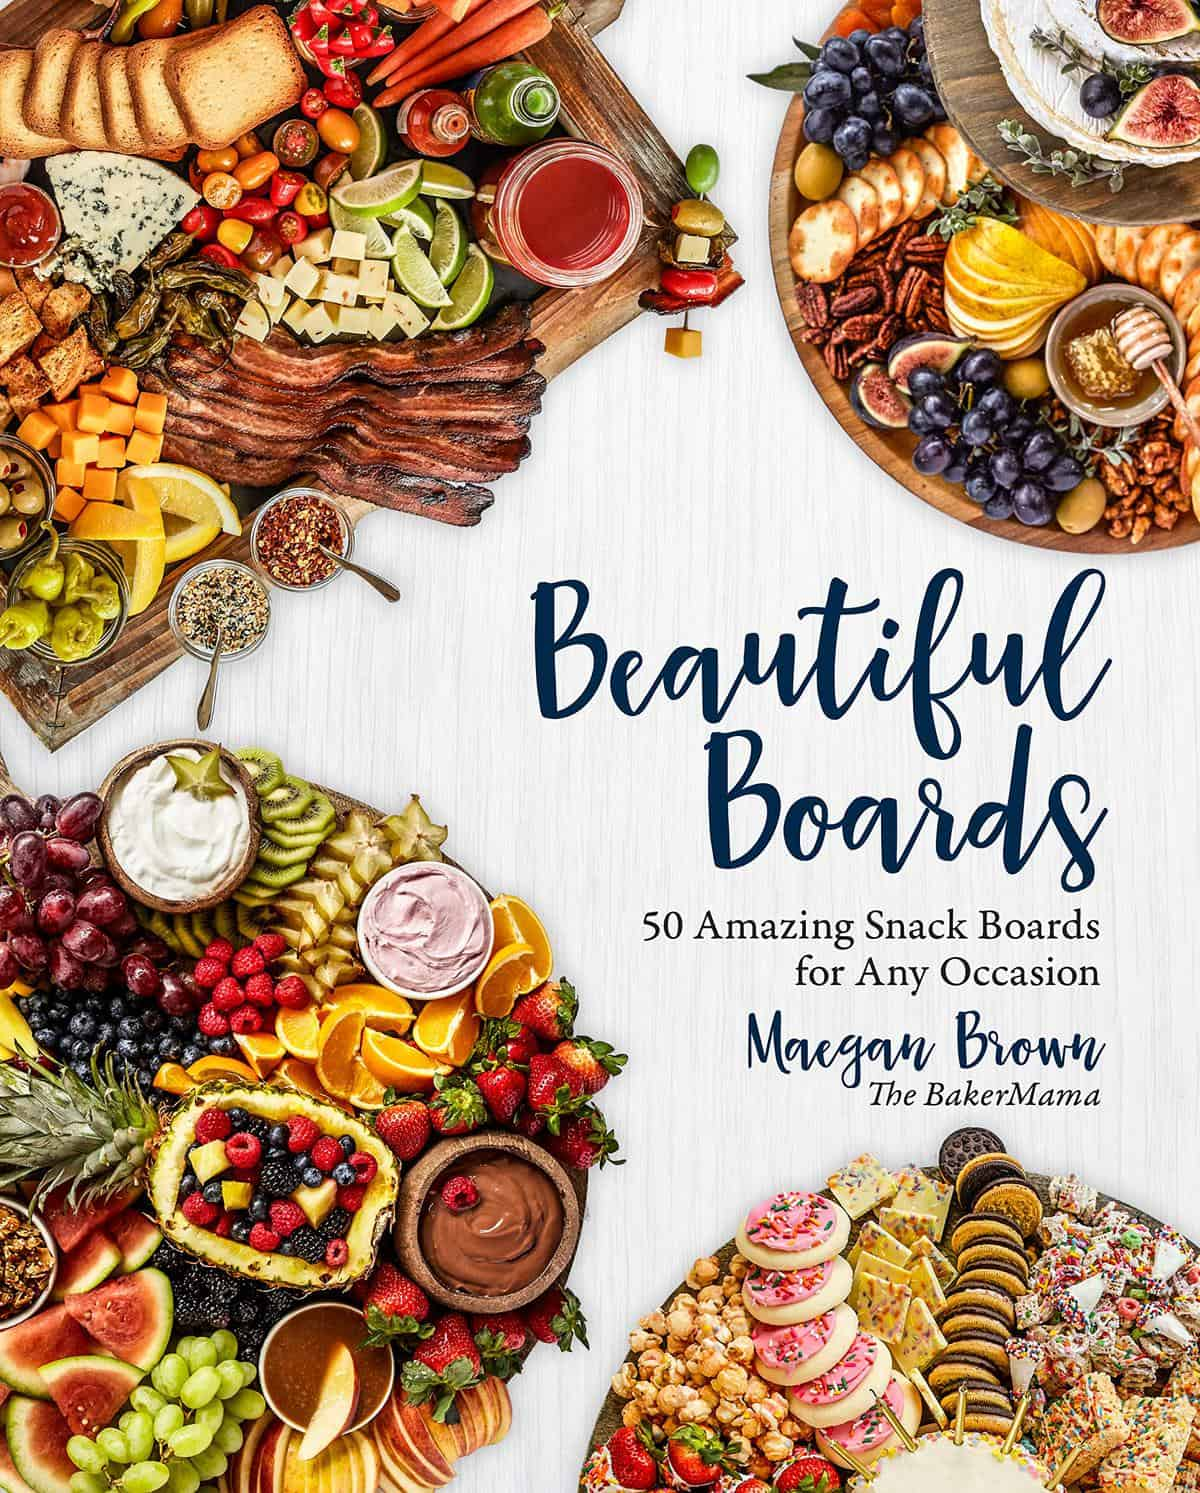 Beautiful Boards: 50 Delicious and Family-Friendly Snack Boards for Any Occasion